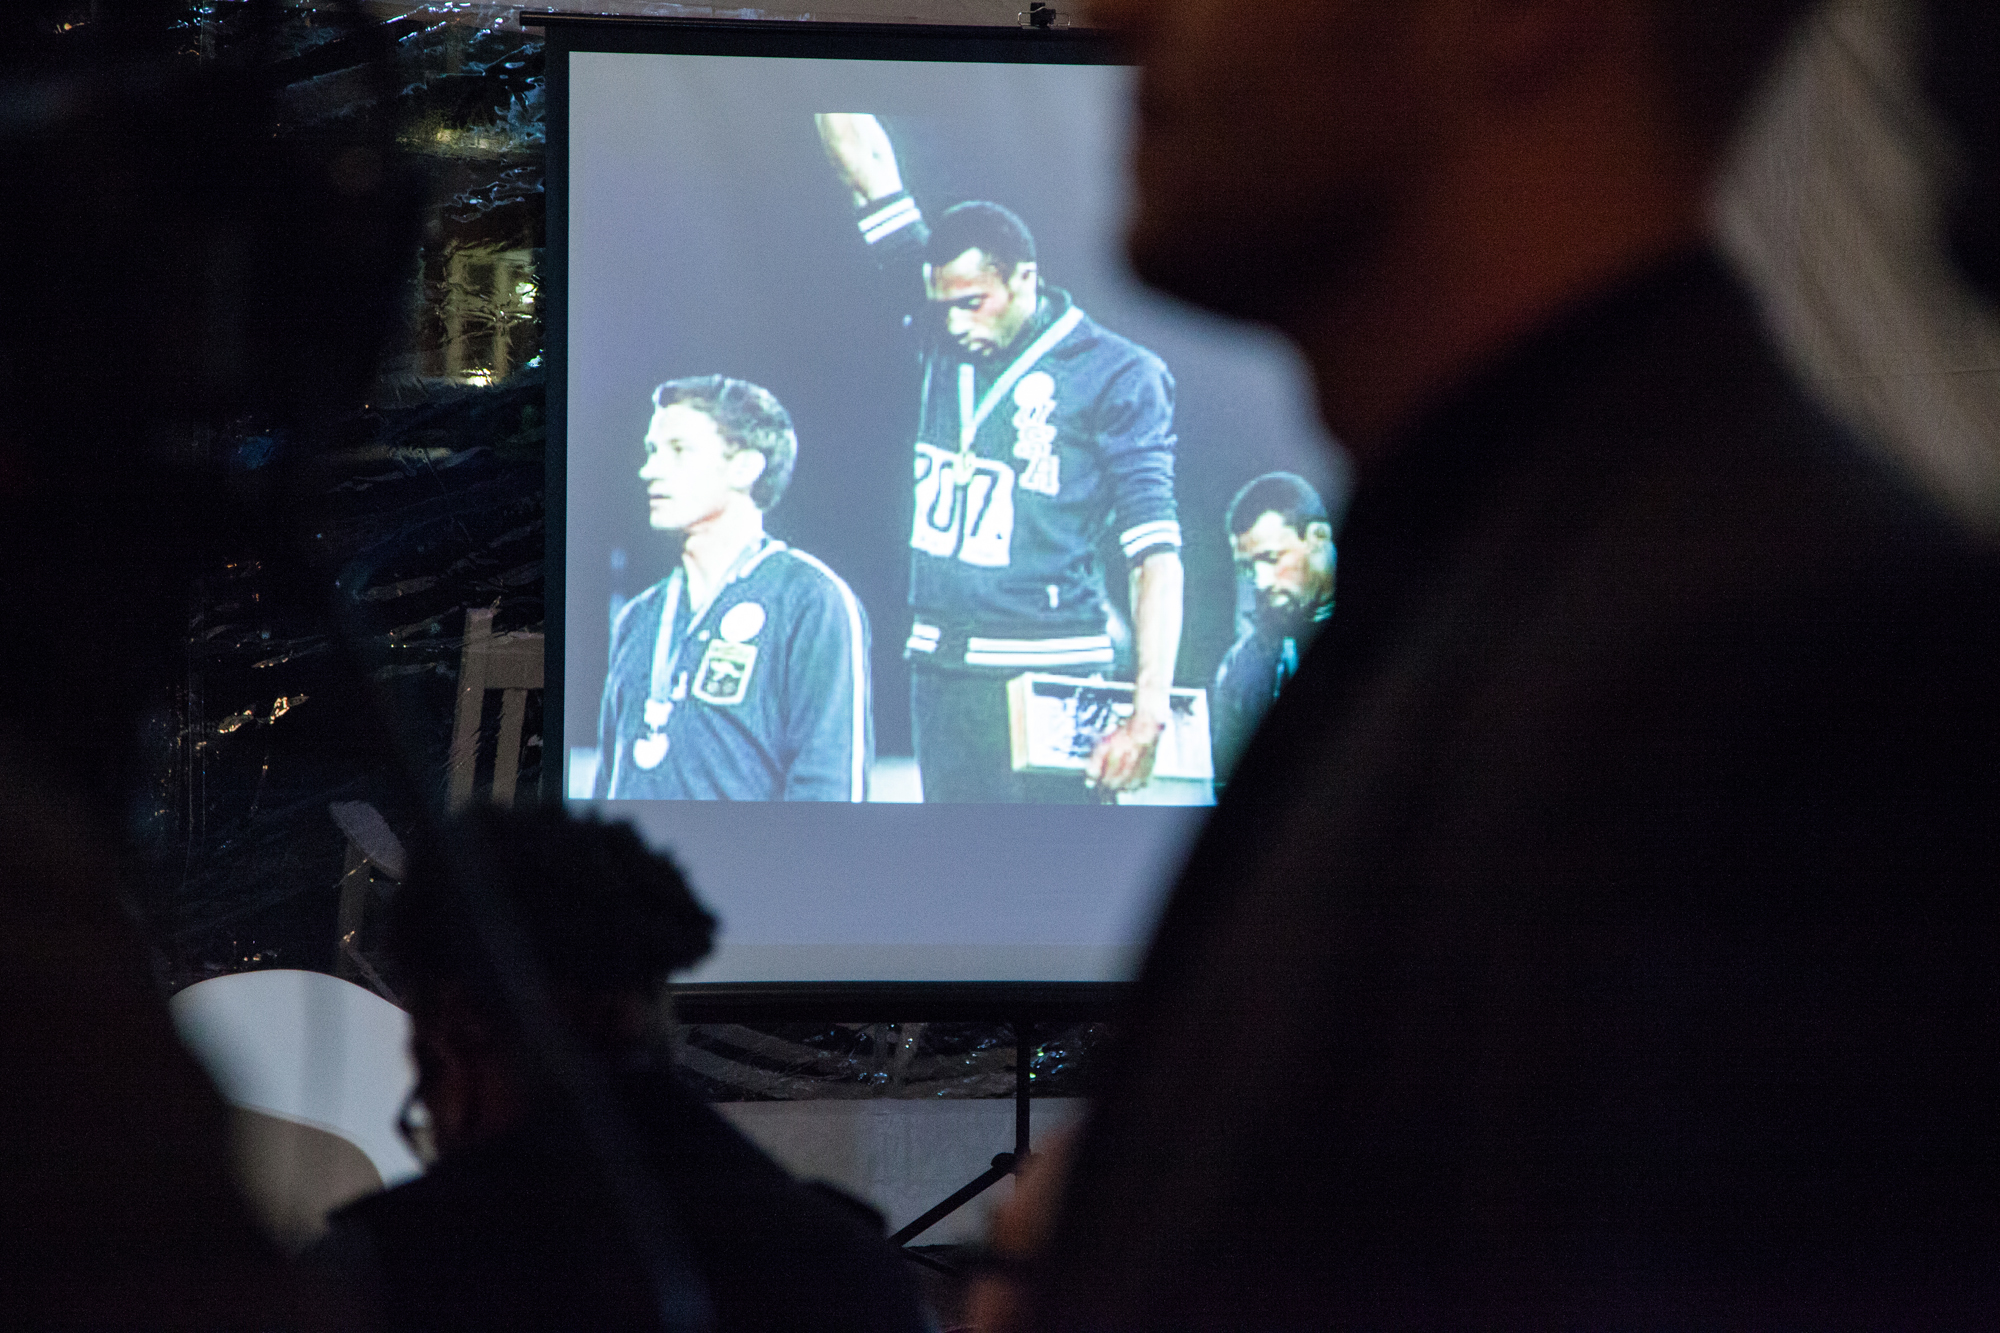 An iconic image of Dr. John Carlos is seen projected on to a screen at an event held in Winston-Salem, NC on October 14, 2016. The event was small and personal, held in a tent where the topic of gender and race in the Olympics, was held.